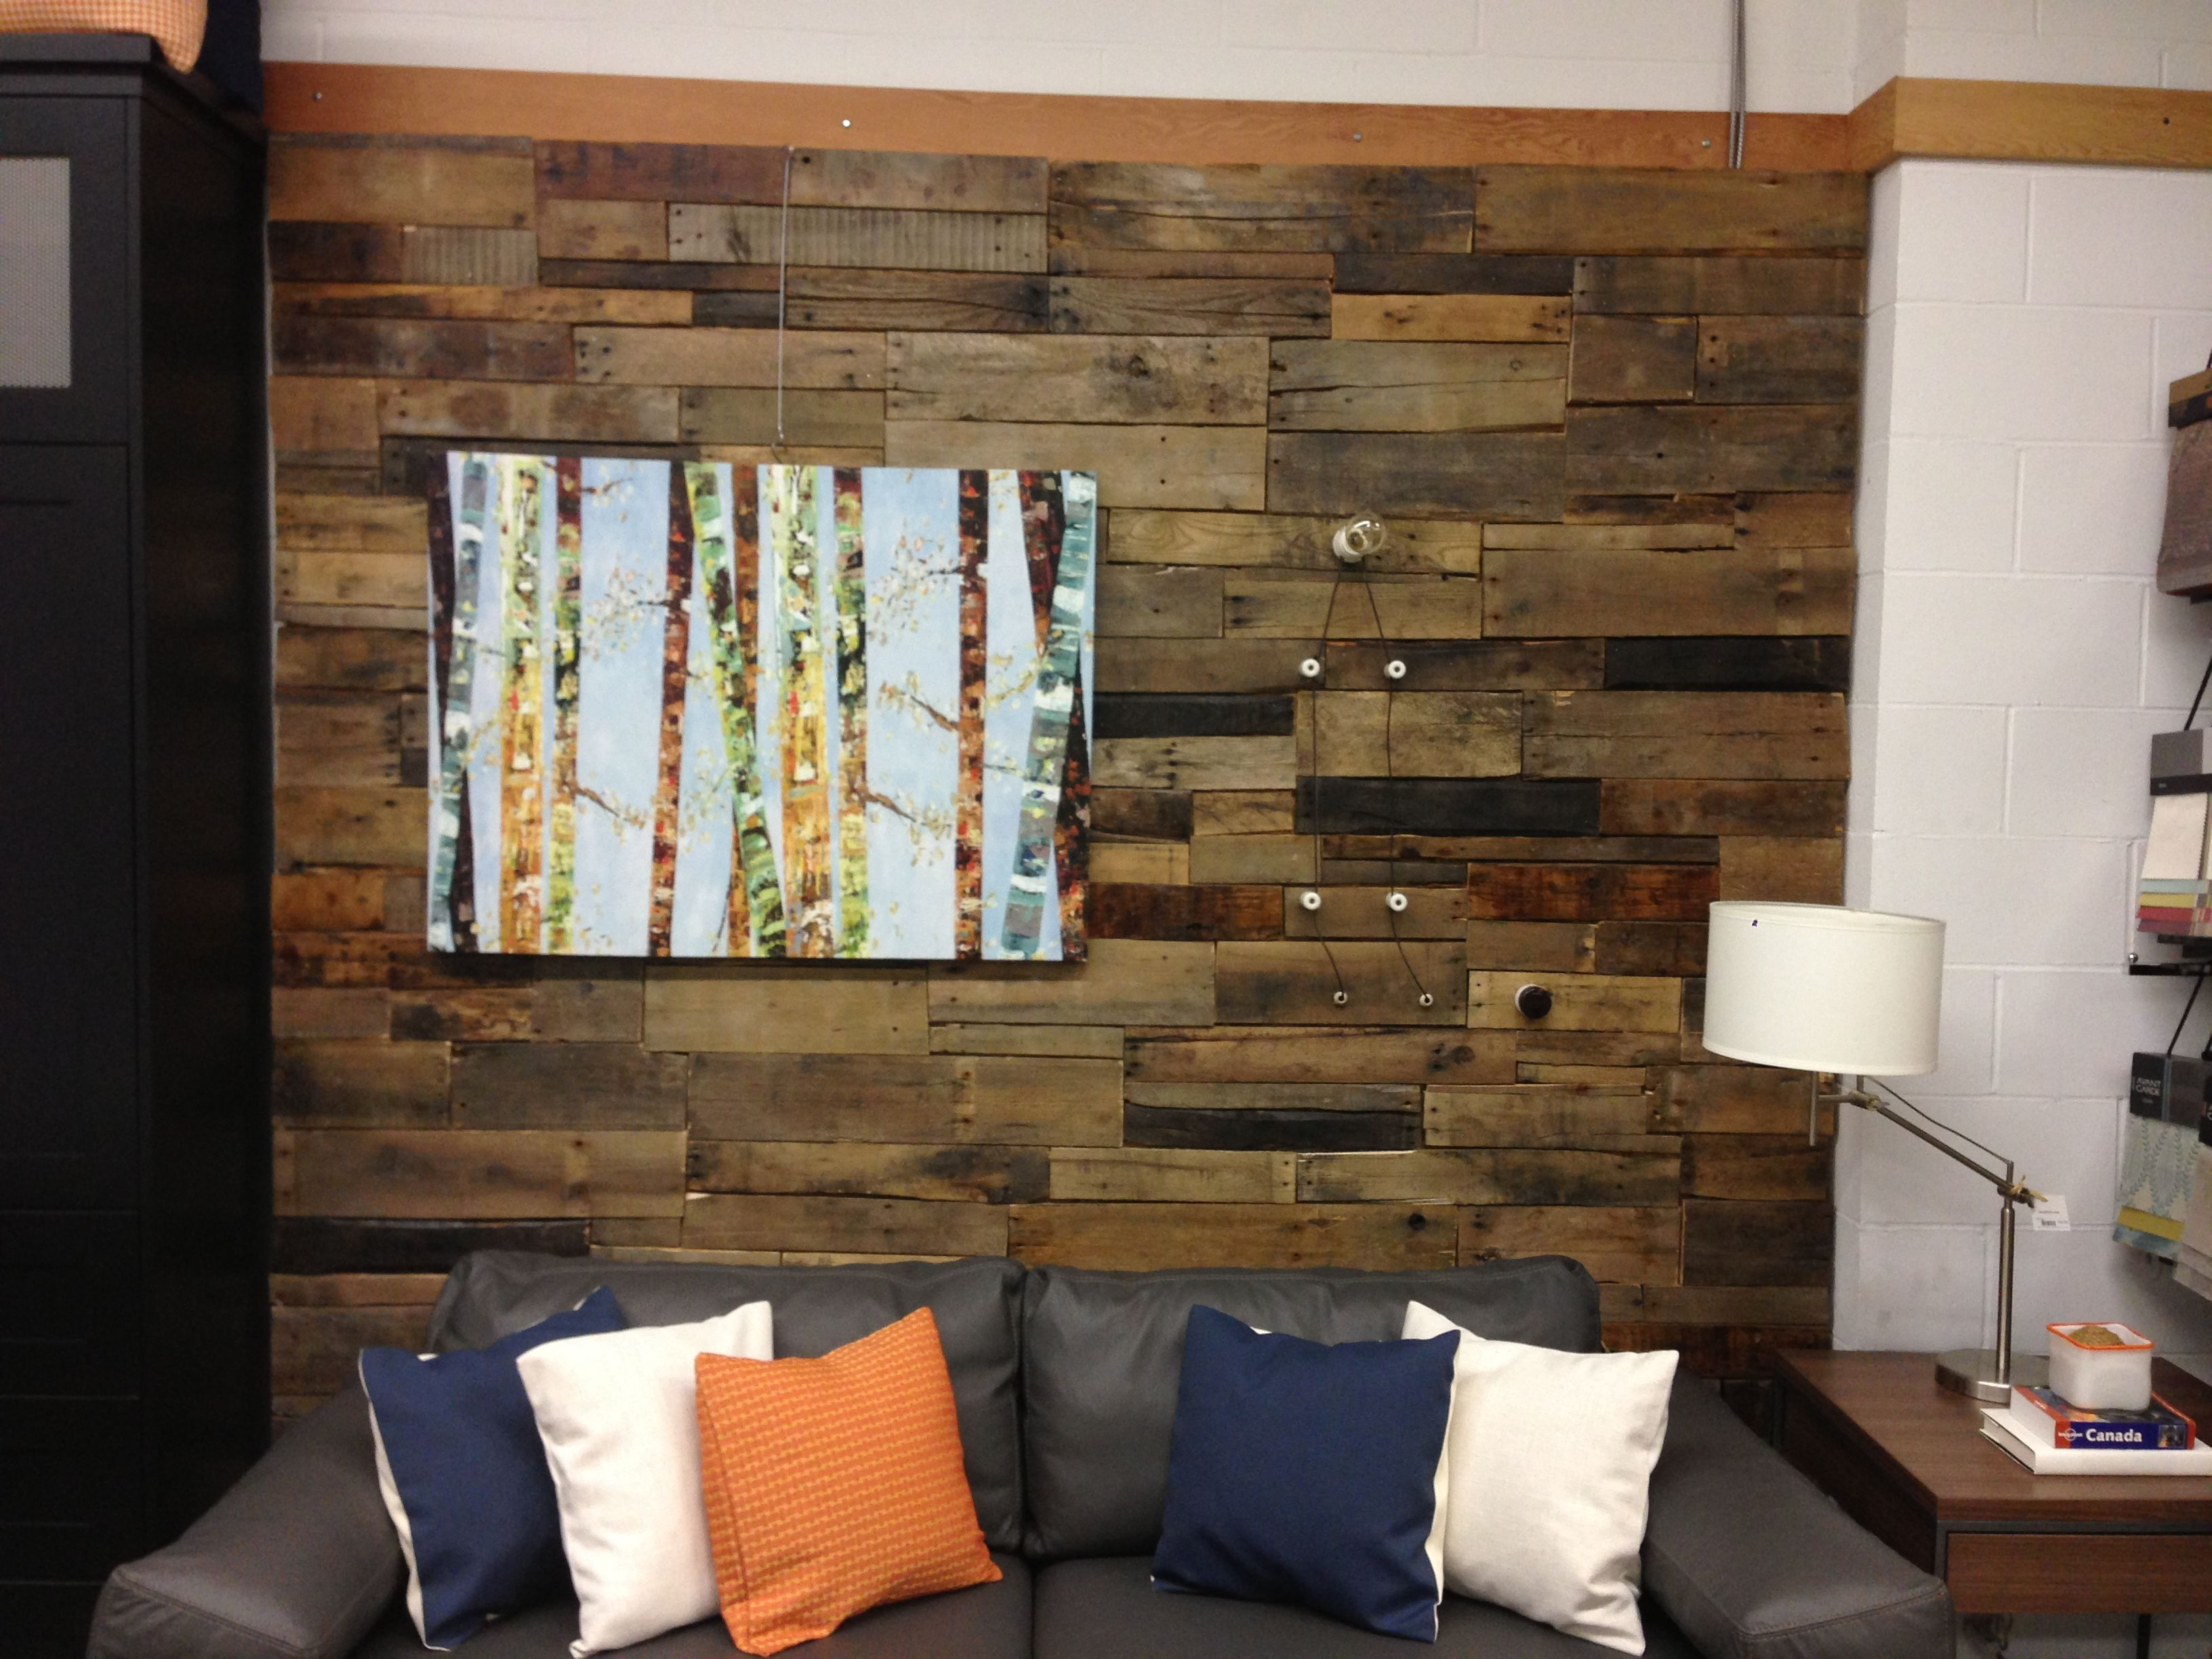 Used pallet wall ideas pinterest for Using pallets for walls